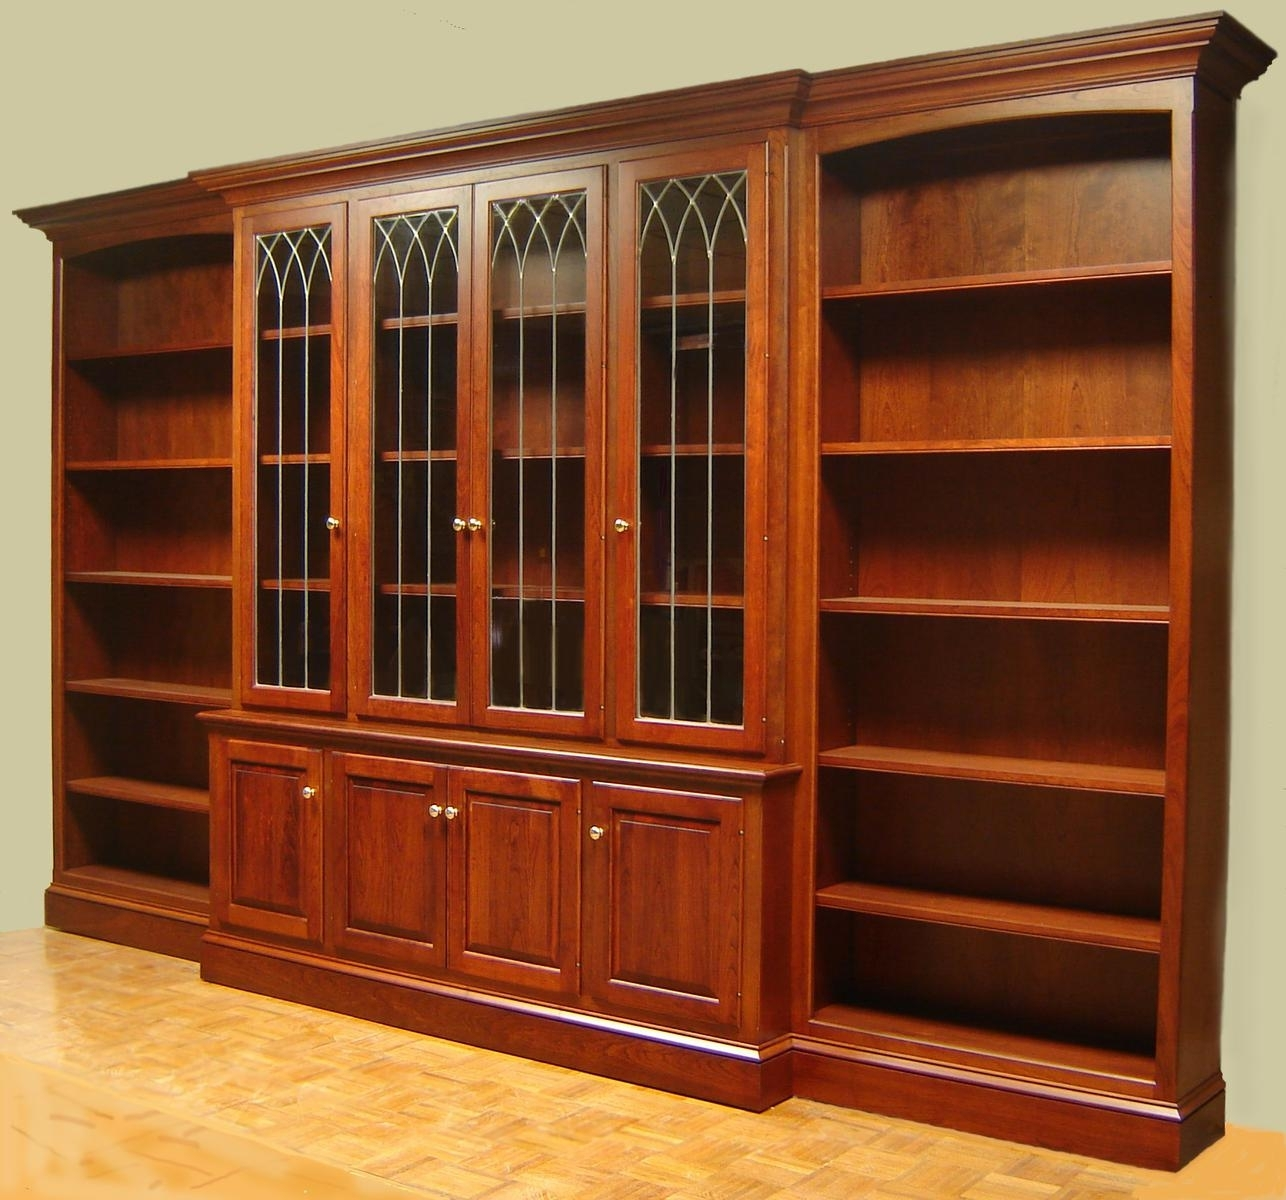 Appealing Wood Bookcase With Doors Solid Wood Construction Natural For Large Solid Wood Bookcase (#1 of 15)